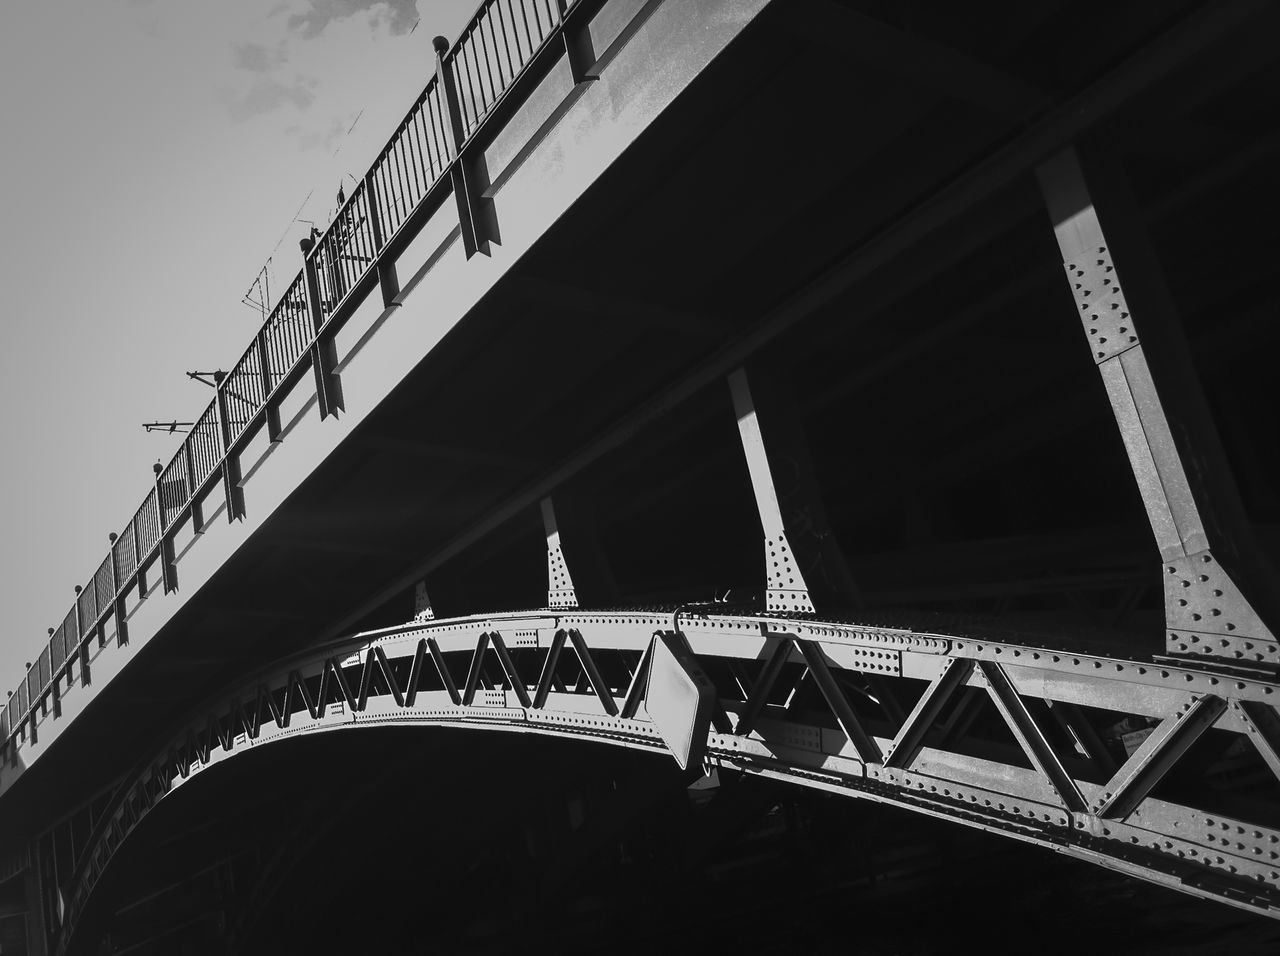 Railway bridge over Spree River at Friedrichstrasse Station Architecture Black And White Bridge Bridge - Man Made Structure Built Structure Engineering Famous Place Friedrichstrasse Station International Landmark Low Angle View Metal Metallic Railing Structure